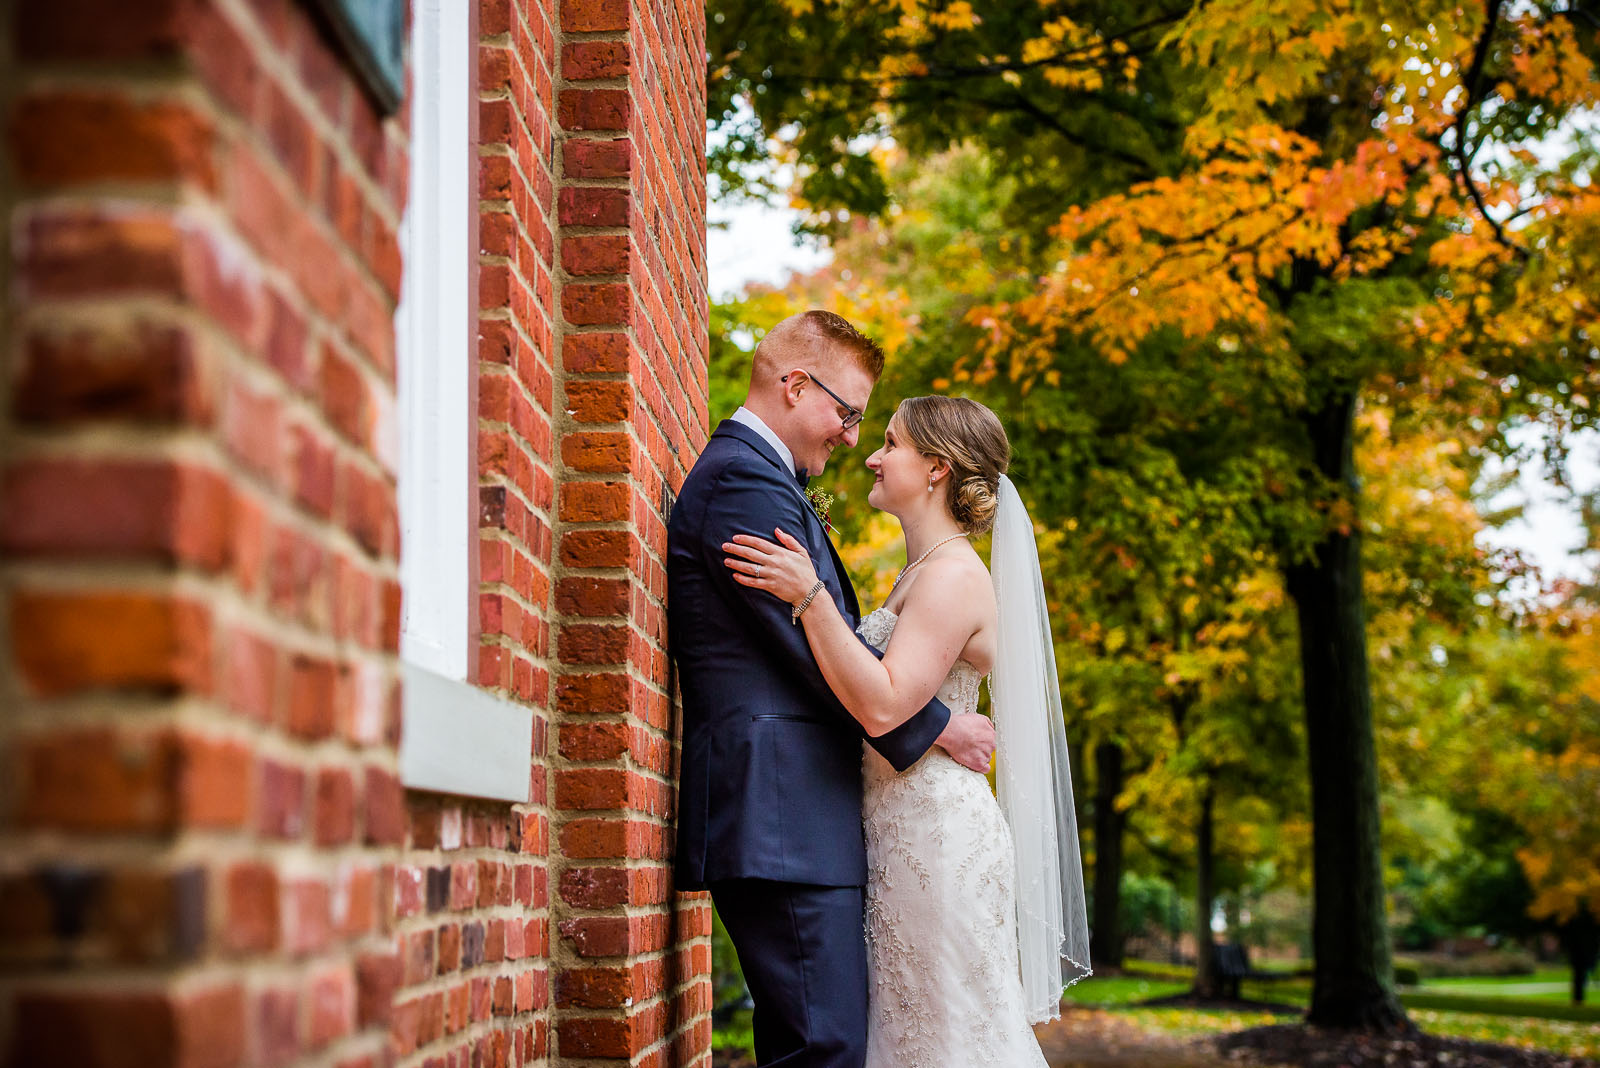 Eric_and_Christy_Photography_Blog_Wedding_Erica_Mike-61